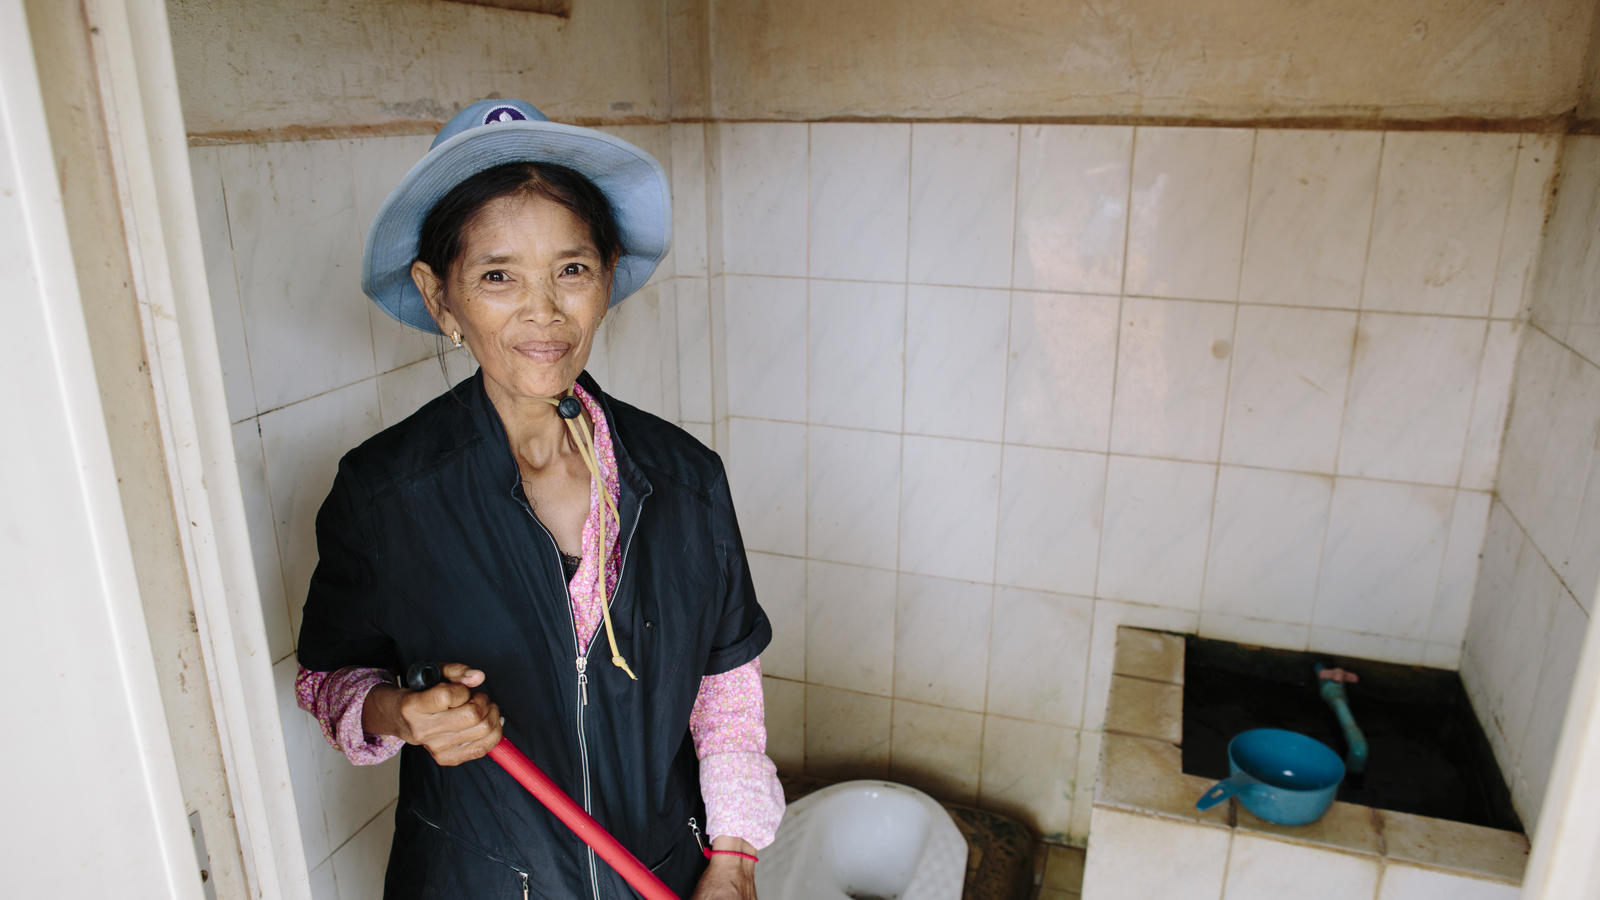 Cleaner Met Pov, 52, works on the patient toilets at Thmor Kol Referral Hospital, Battambang, Cambodia.